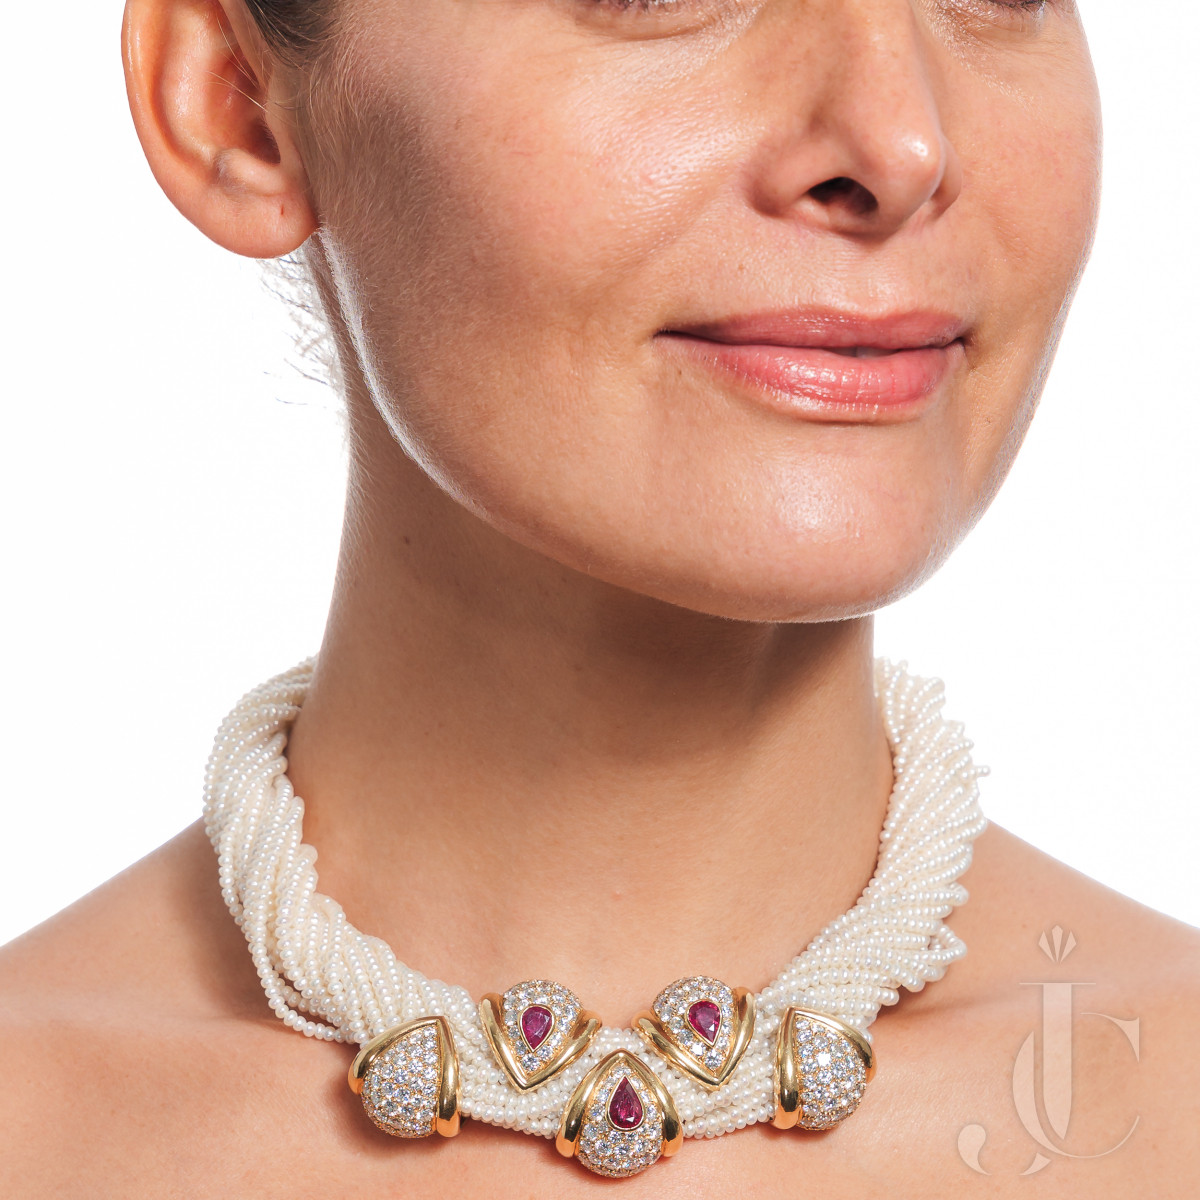 French 18k gold and pearl necklace set with diamonds and rubies by Rene Boivin